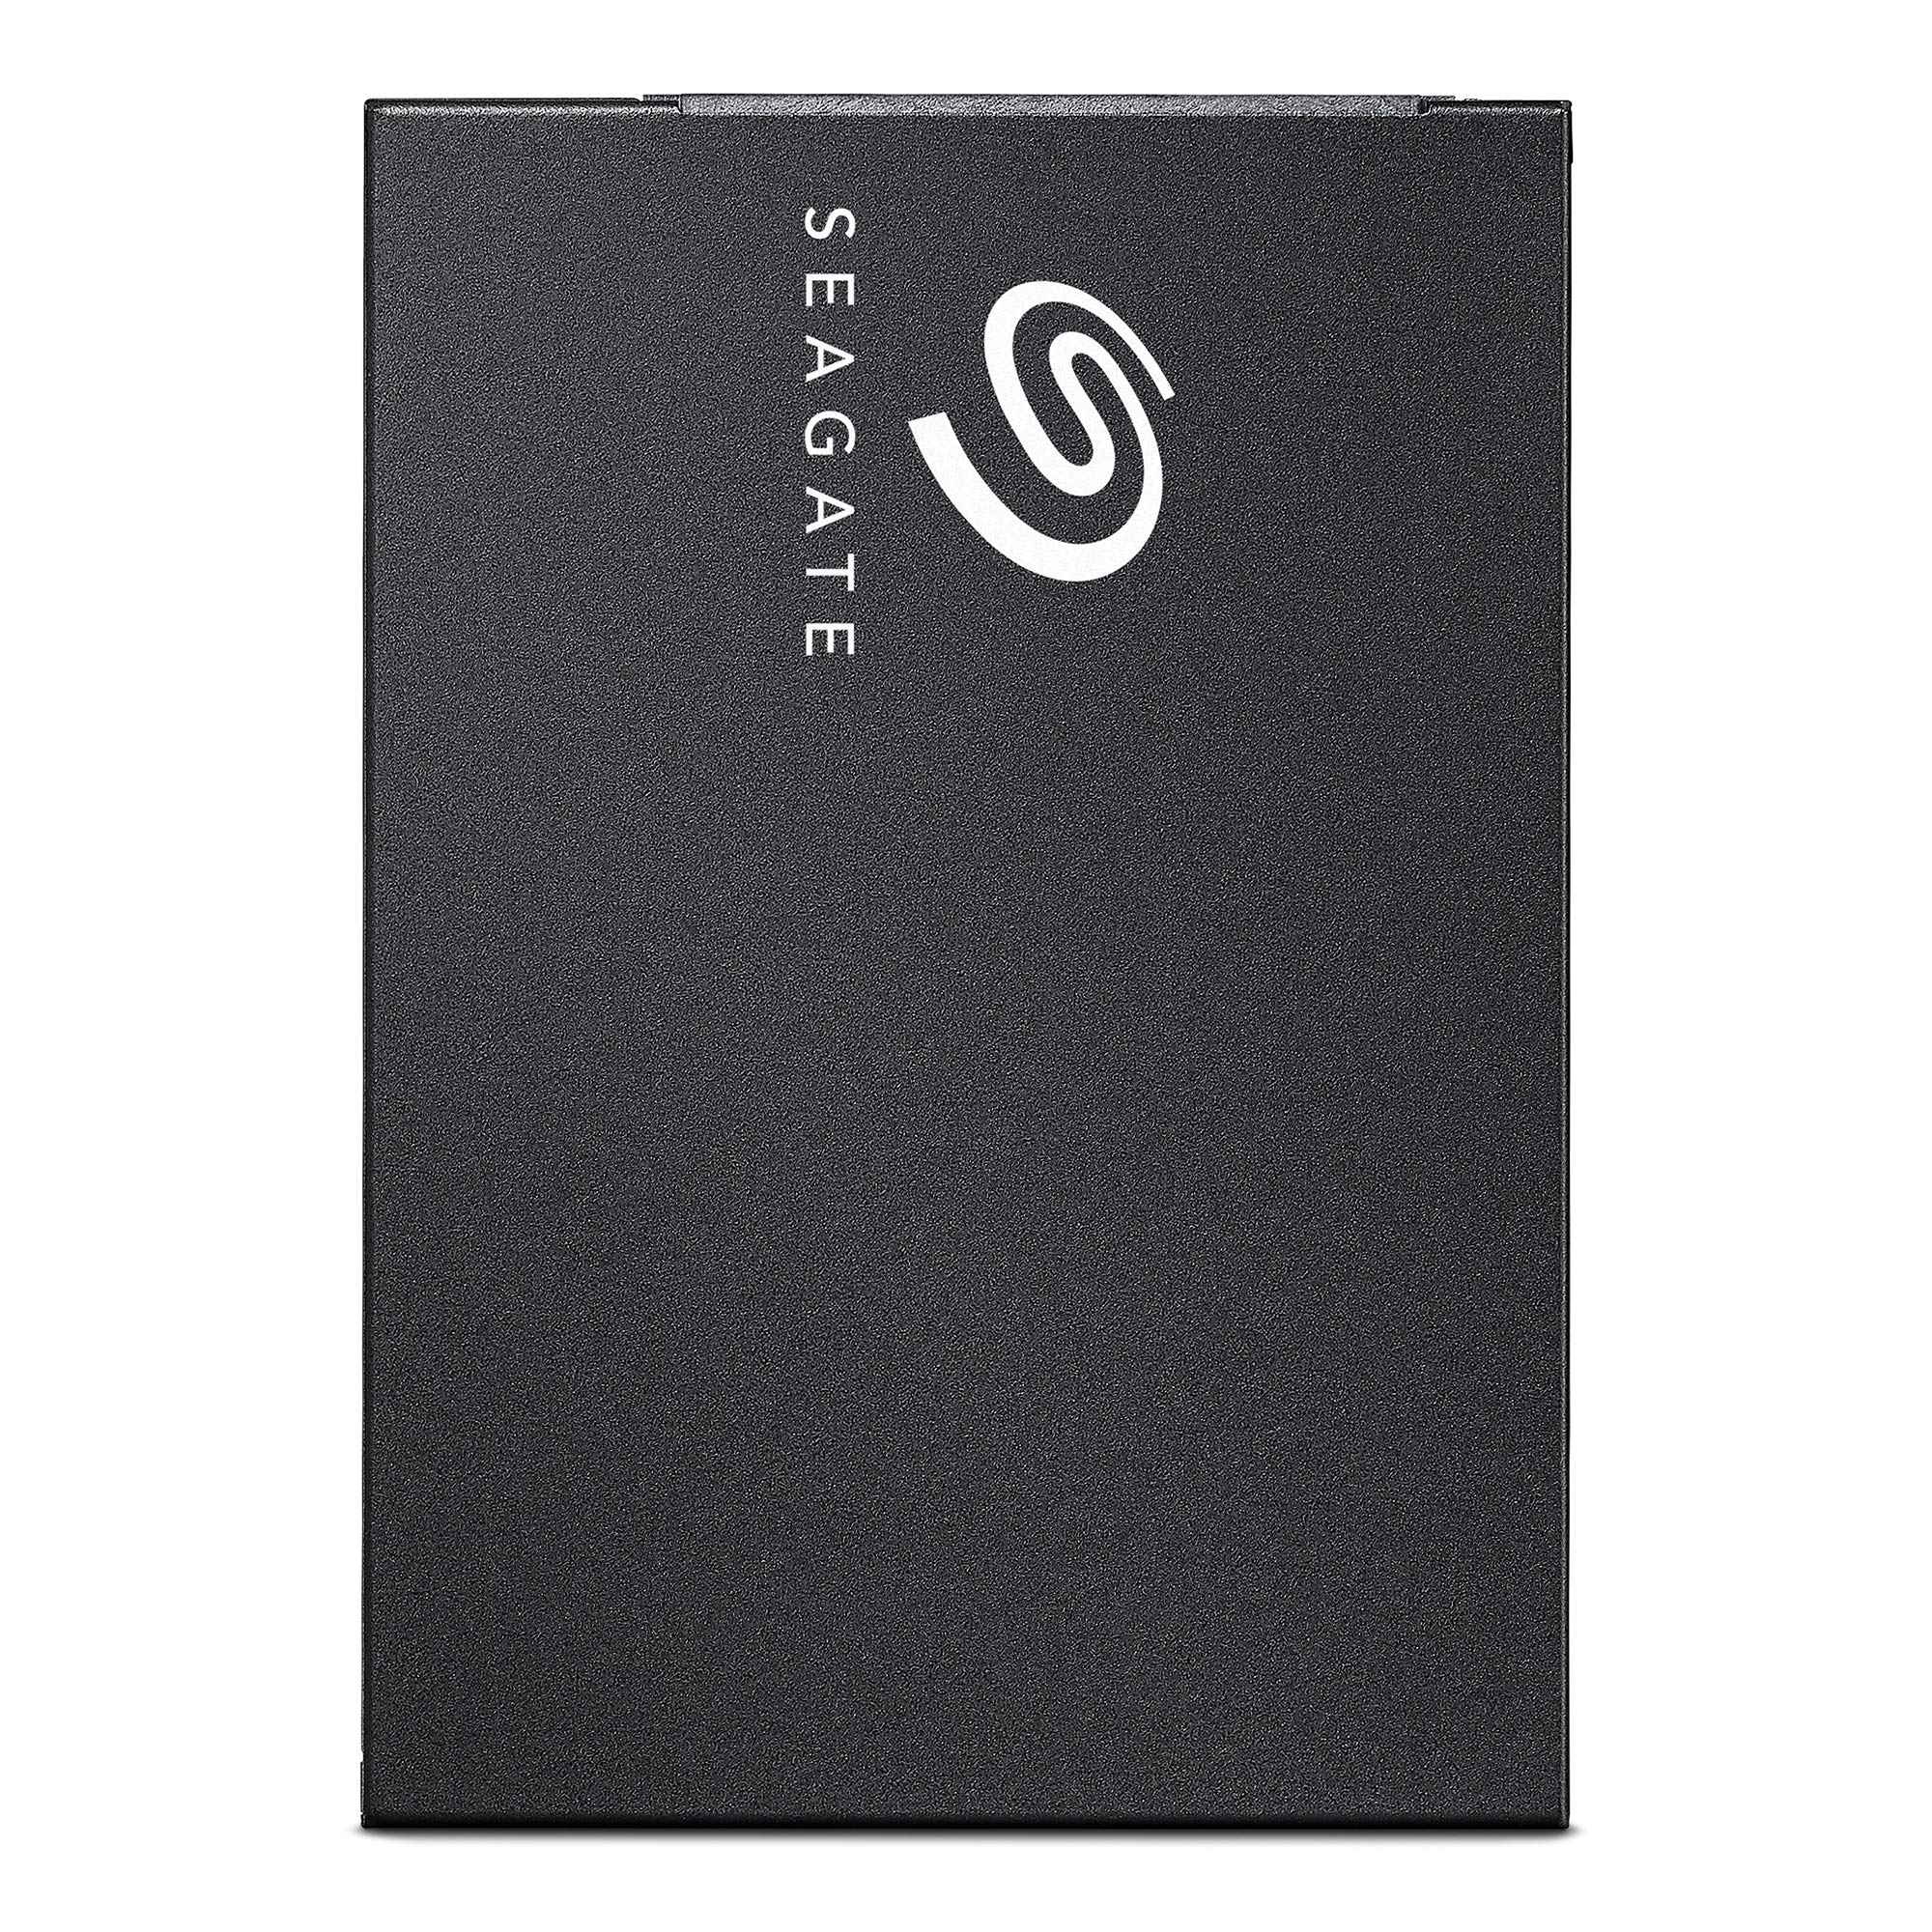 Seagate BarraCuda SSD 1TB Internal Solid State Drive - 2.5 Inch SATA 6Gb/s for Computer Desktop PC Laptop (STGS1000401) by Seagate (Image #2)